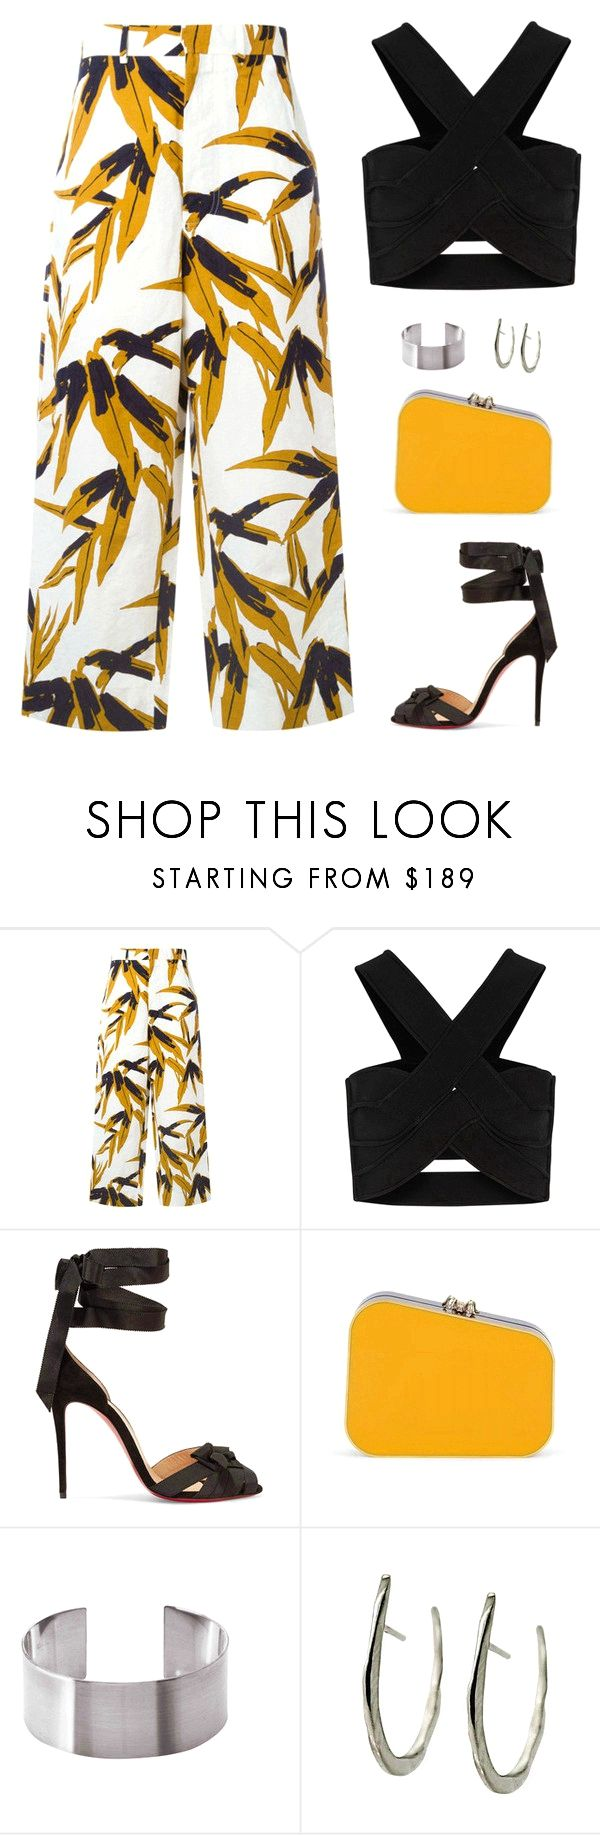 Sin título #4720 by mdmsb on Polyvore featuring moda, Marni, Issa, Christian Louboutin, Charlotte Olympia y Maria Dorai Raj on the lookout for limited offer,no duty and free shipping.#shoes #womenstyle #heels #womenheels #womenshoes  #fashionheels #redheels #louboutin #louboutinheels #christanlouboutinshoes #louboutinworld